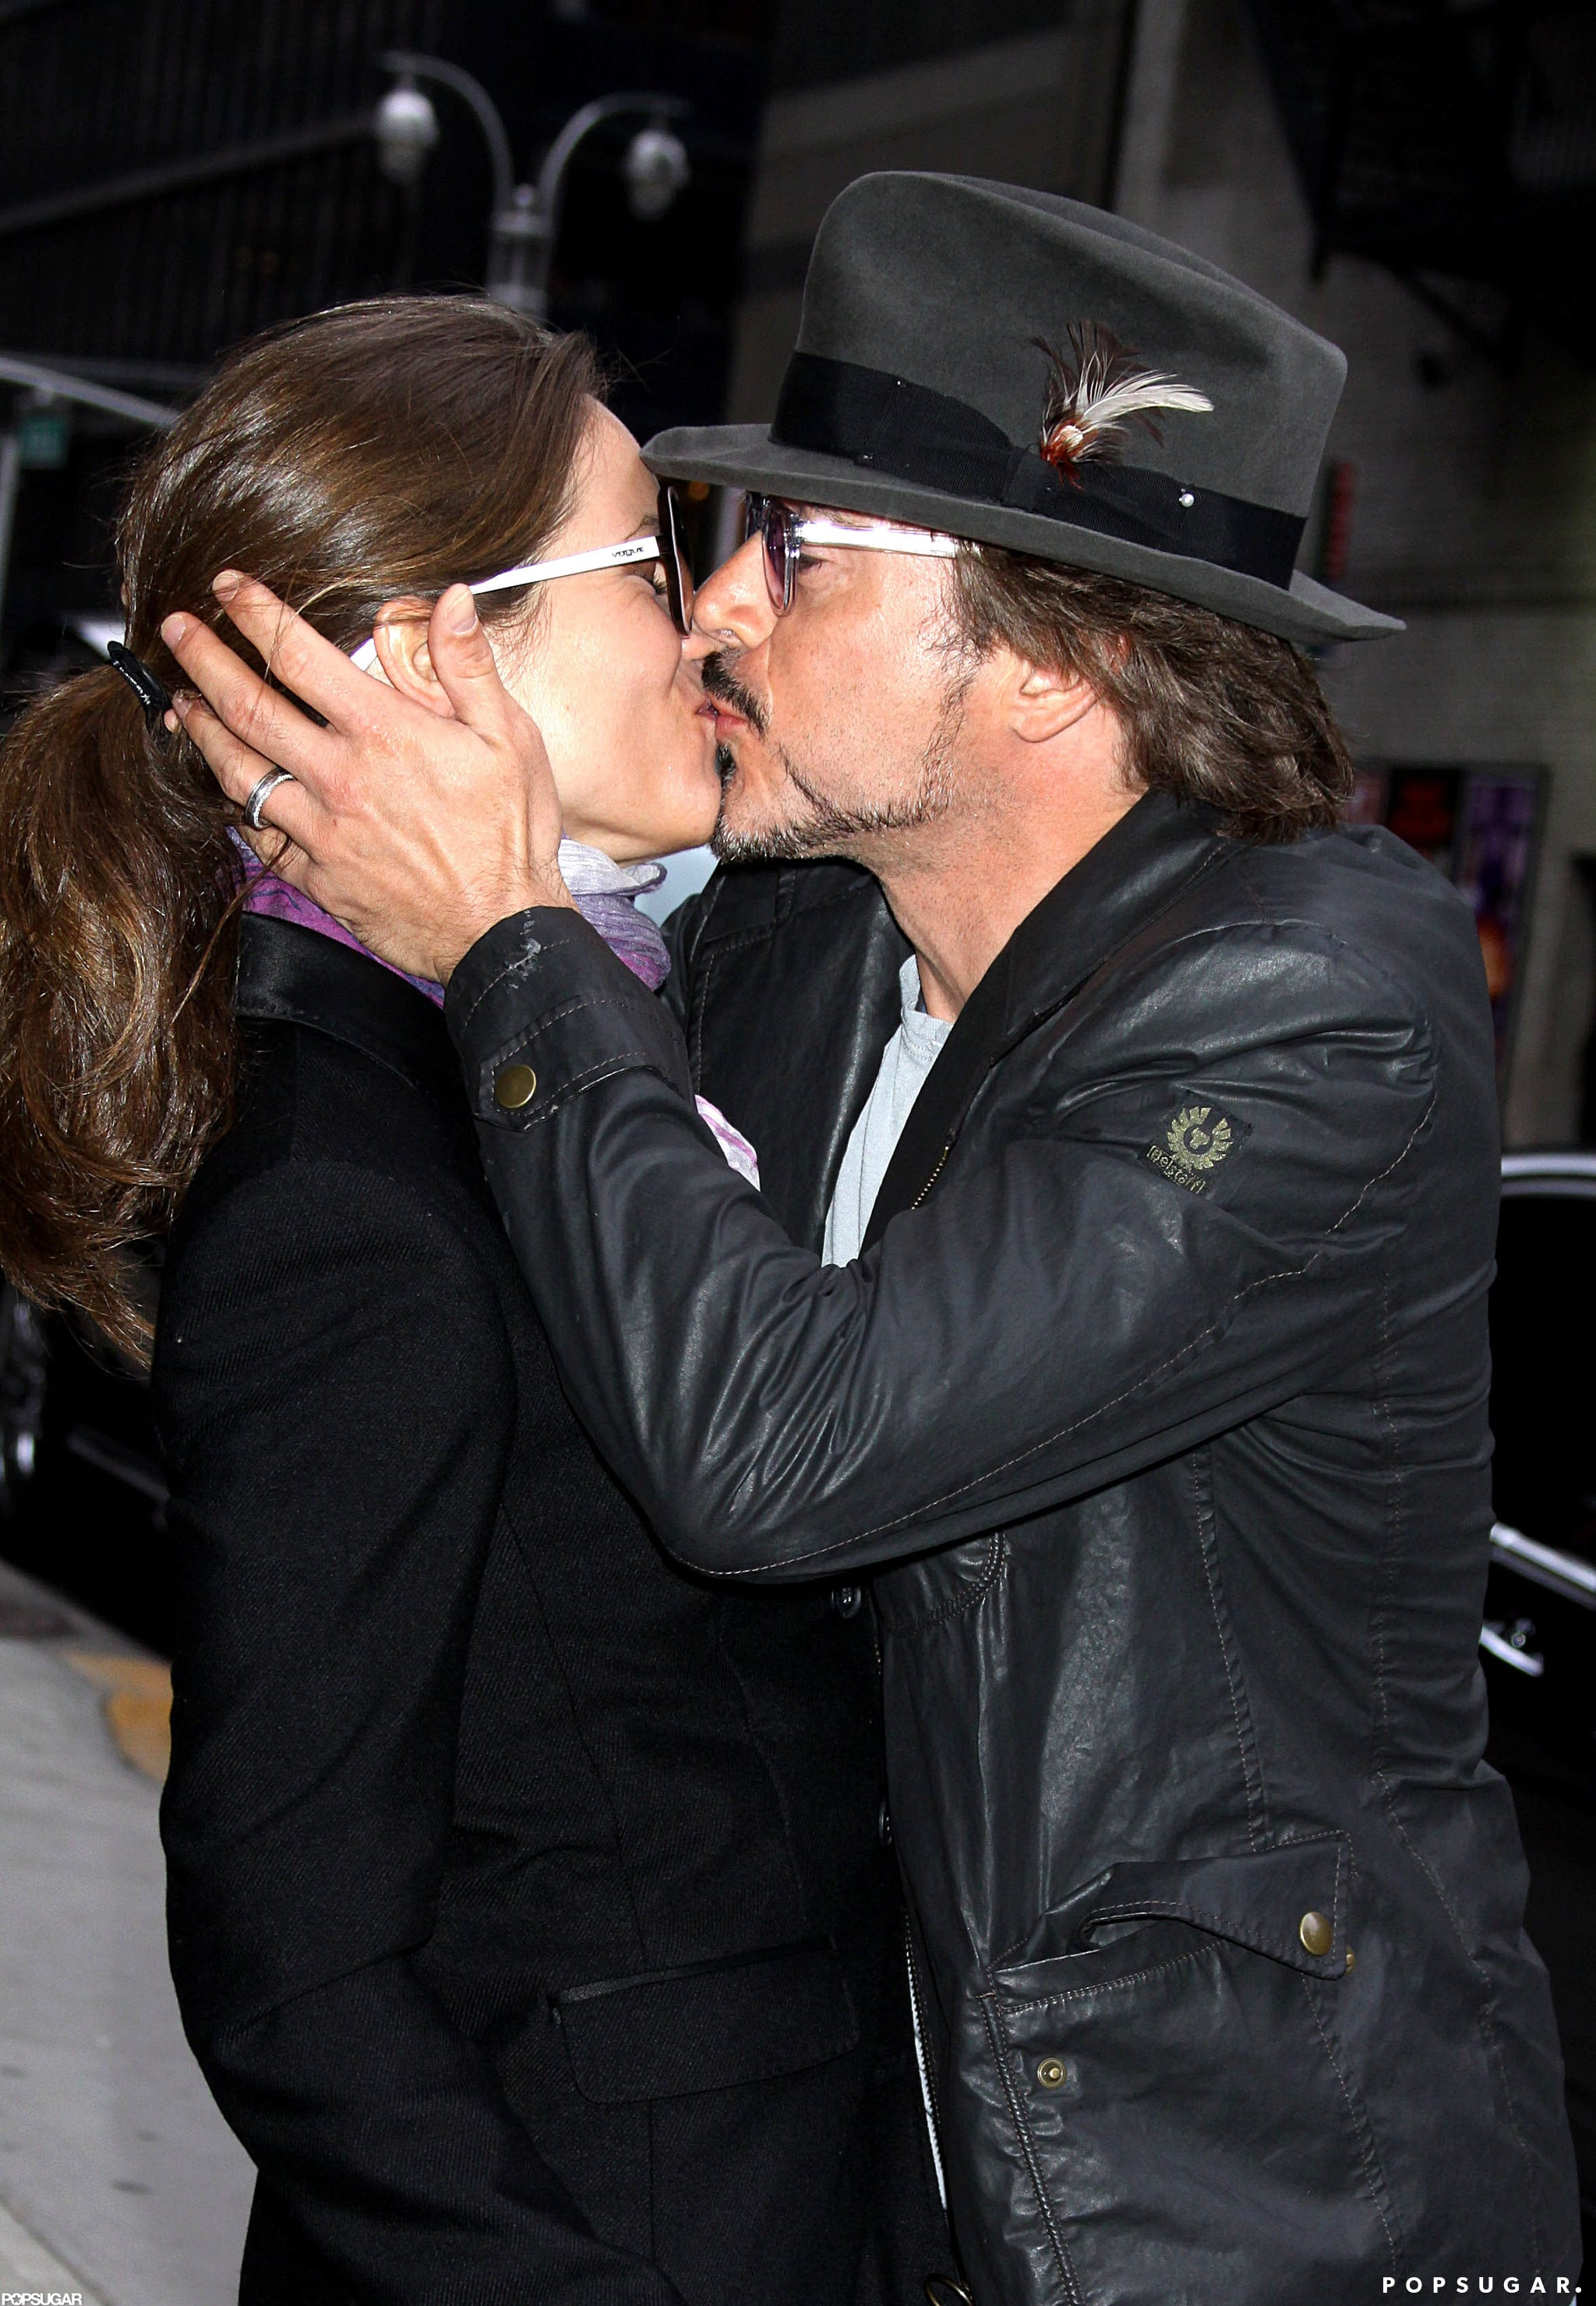 Robert Downey Jr. and his wife, Susan, shared a kiss in NYC after an appearance on The Late Show With David Letterman in April 2010.